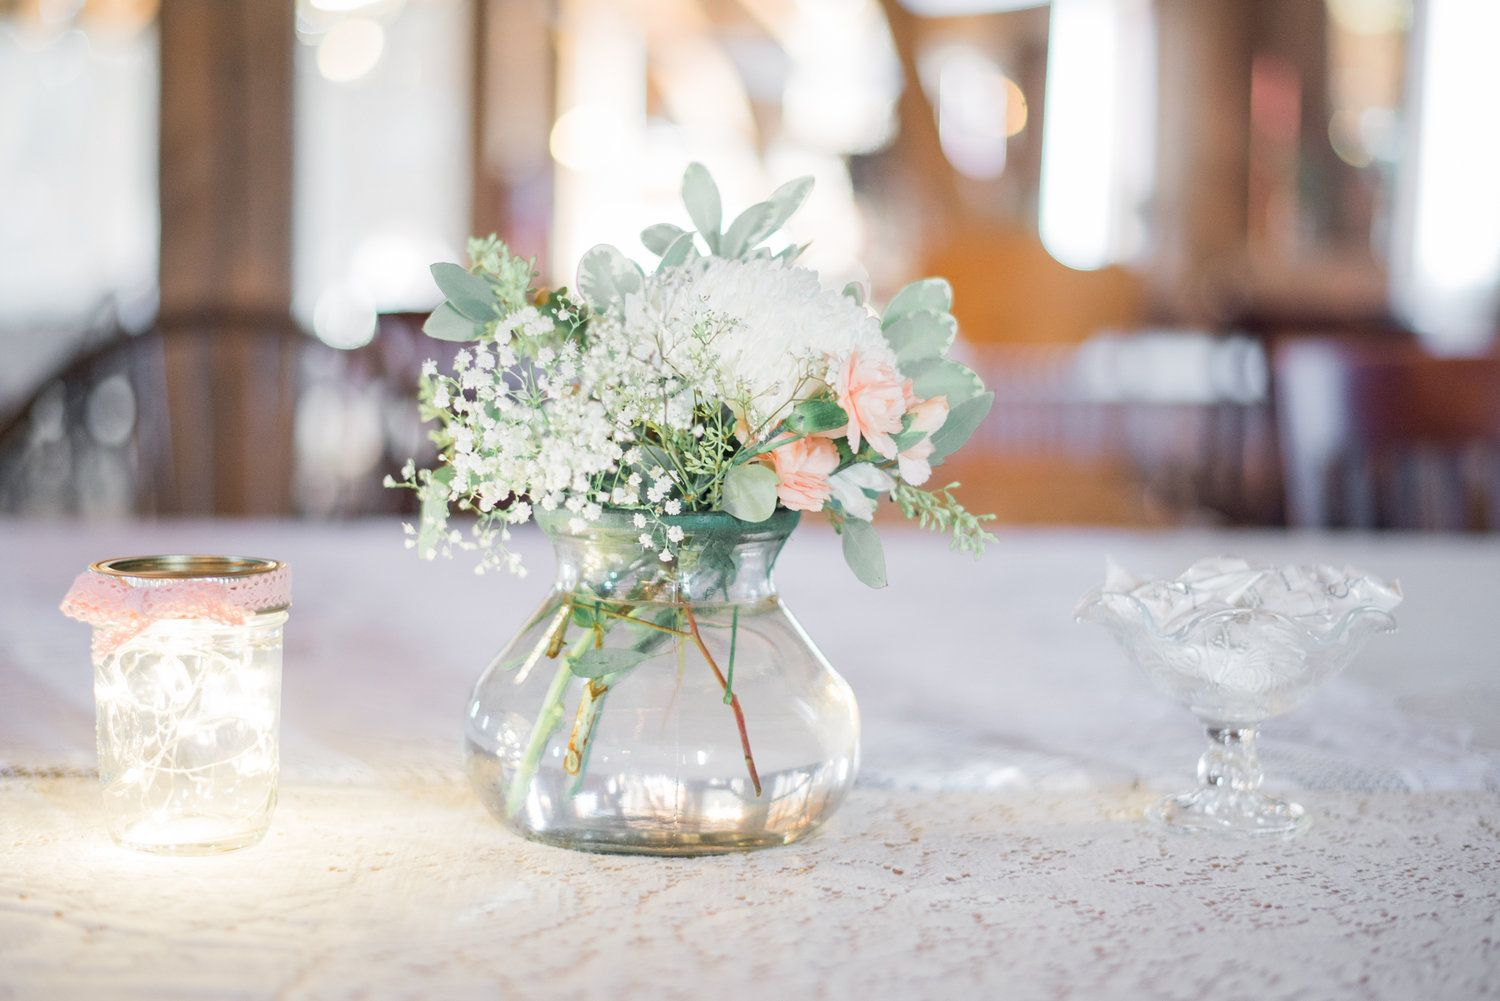 Murdock Wedding | Barn wedding centerpieces, Barn weddings and ...